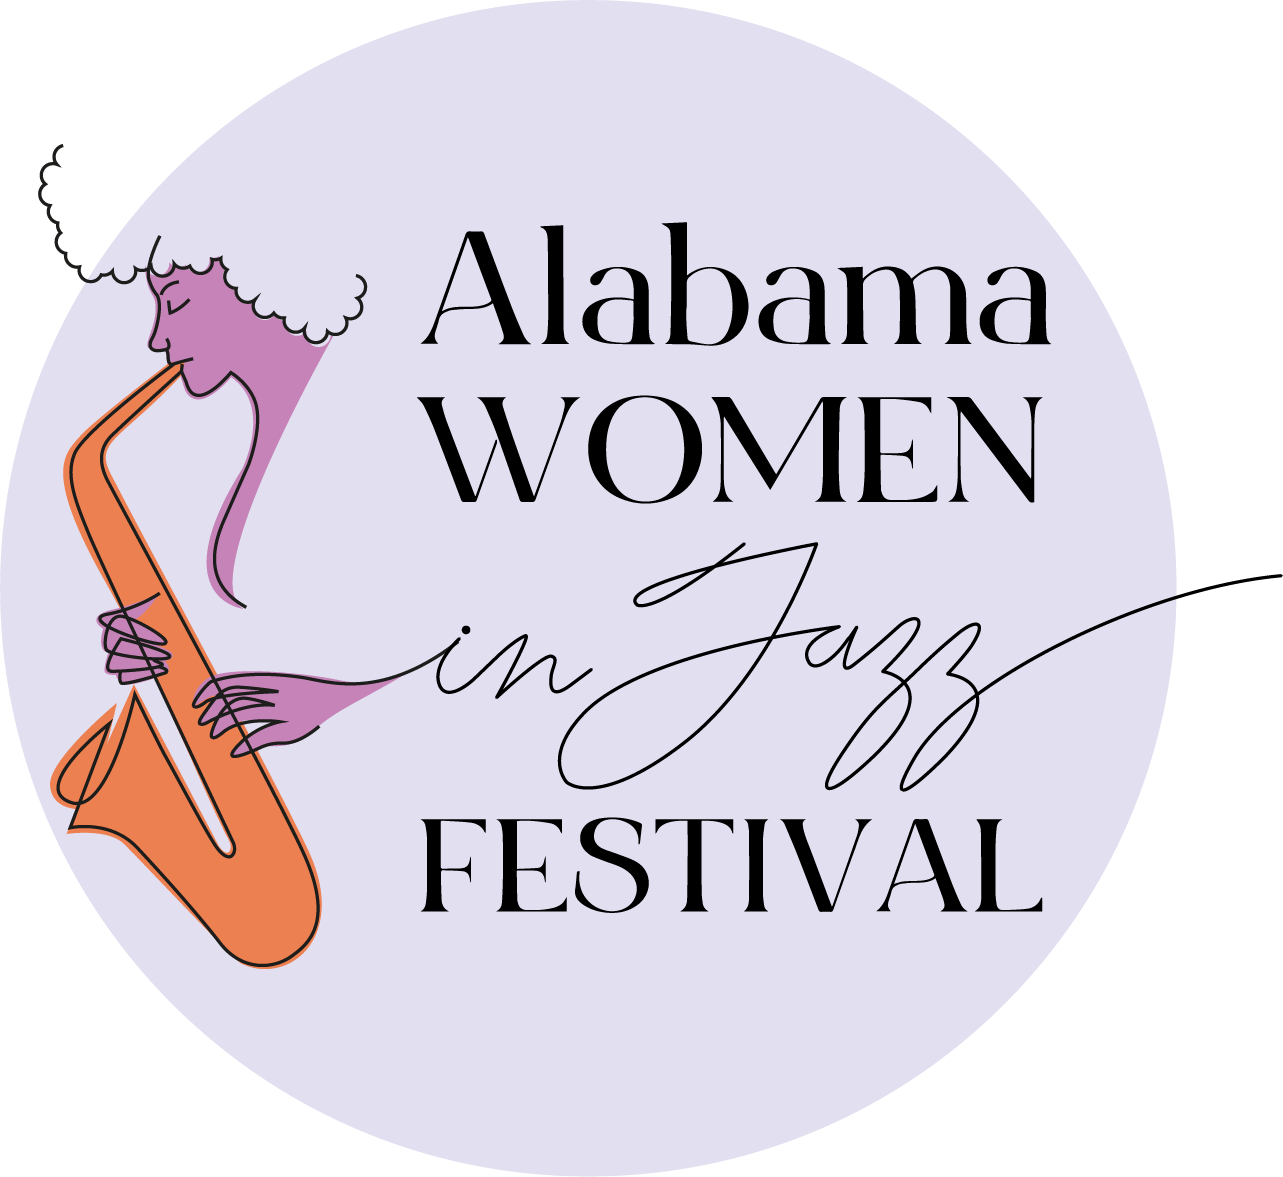 Alabama Women in Jazz Festival